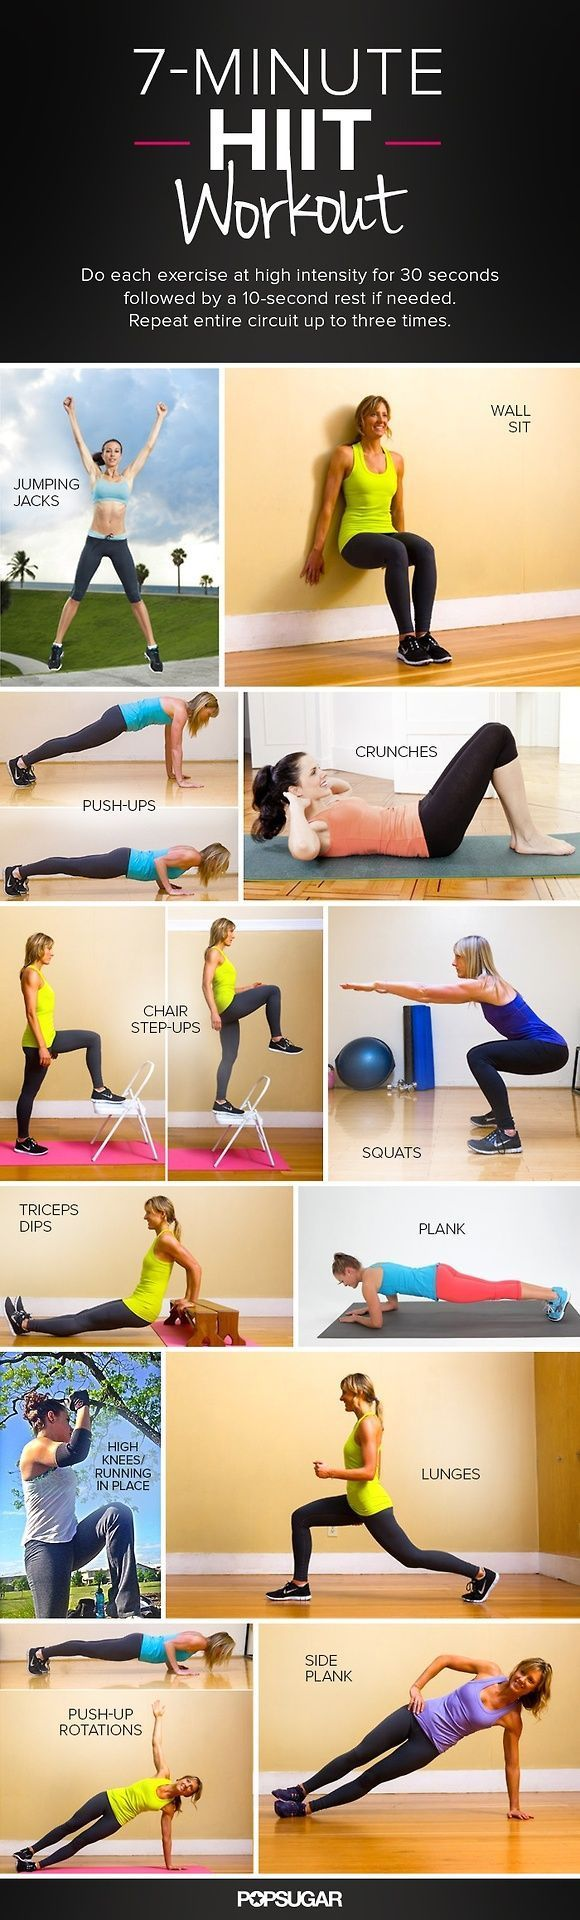 7 minutes HIIT workout, do every exercise 30 seconds with 2 to 3 session and interval rest for 10 seconds